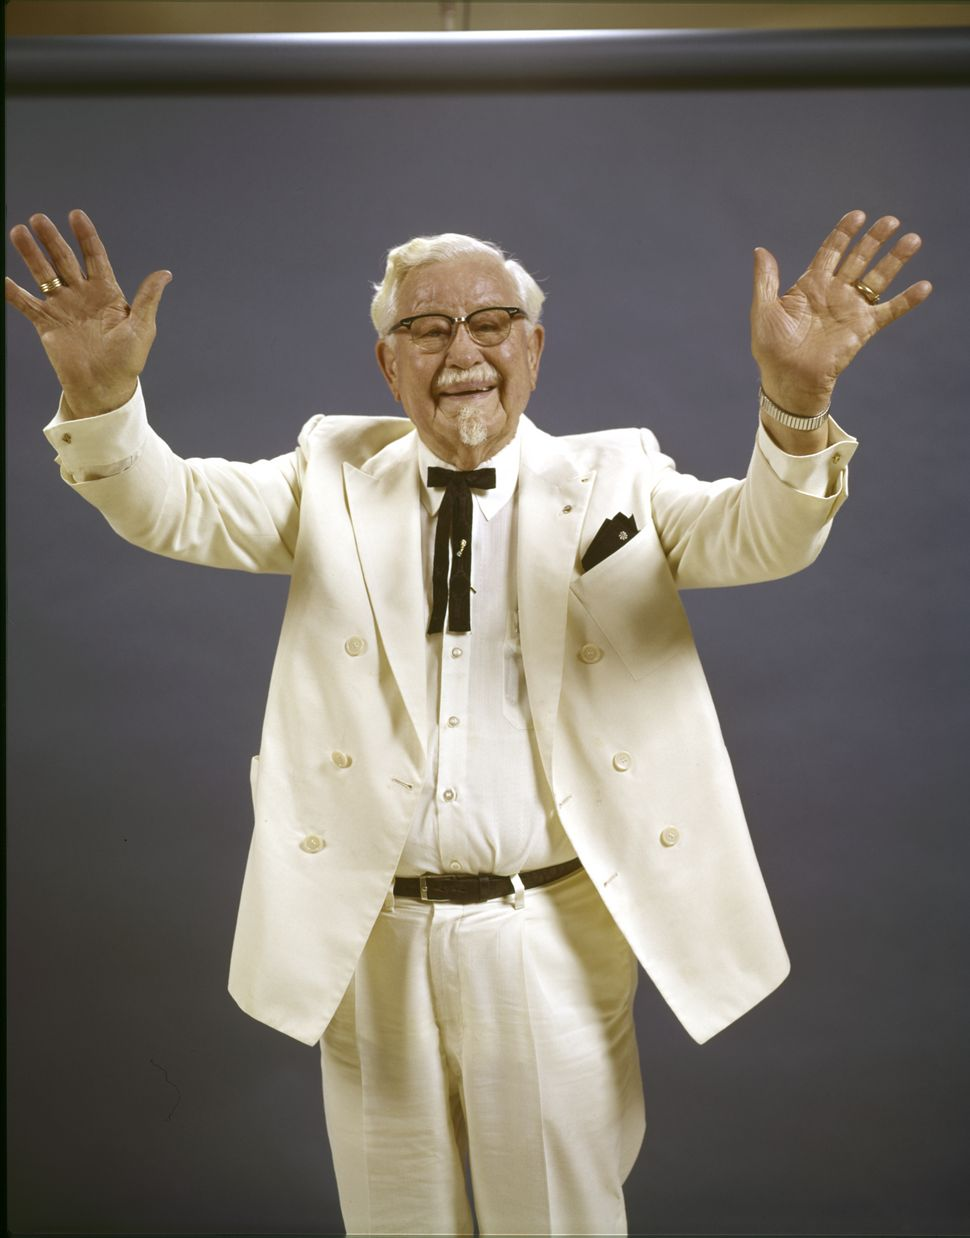 Colonel Sanders poses in his signature white suit with hands raised (circa 1970).